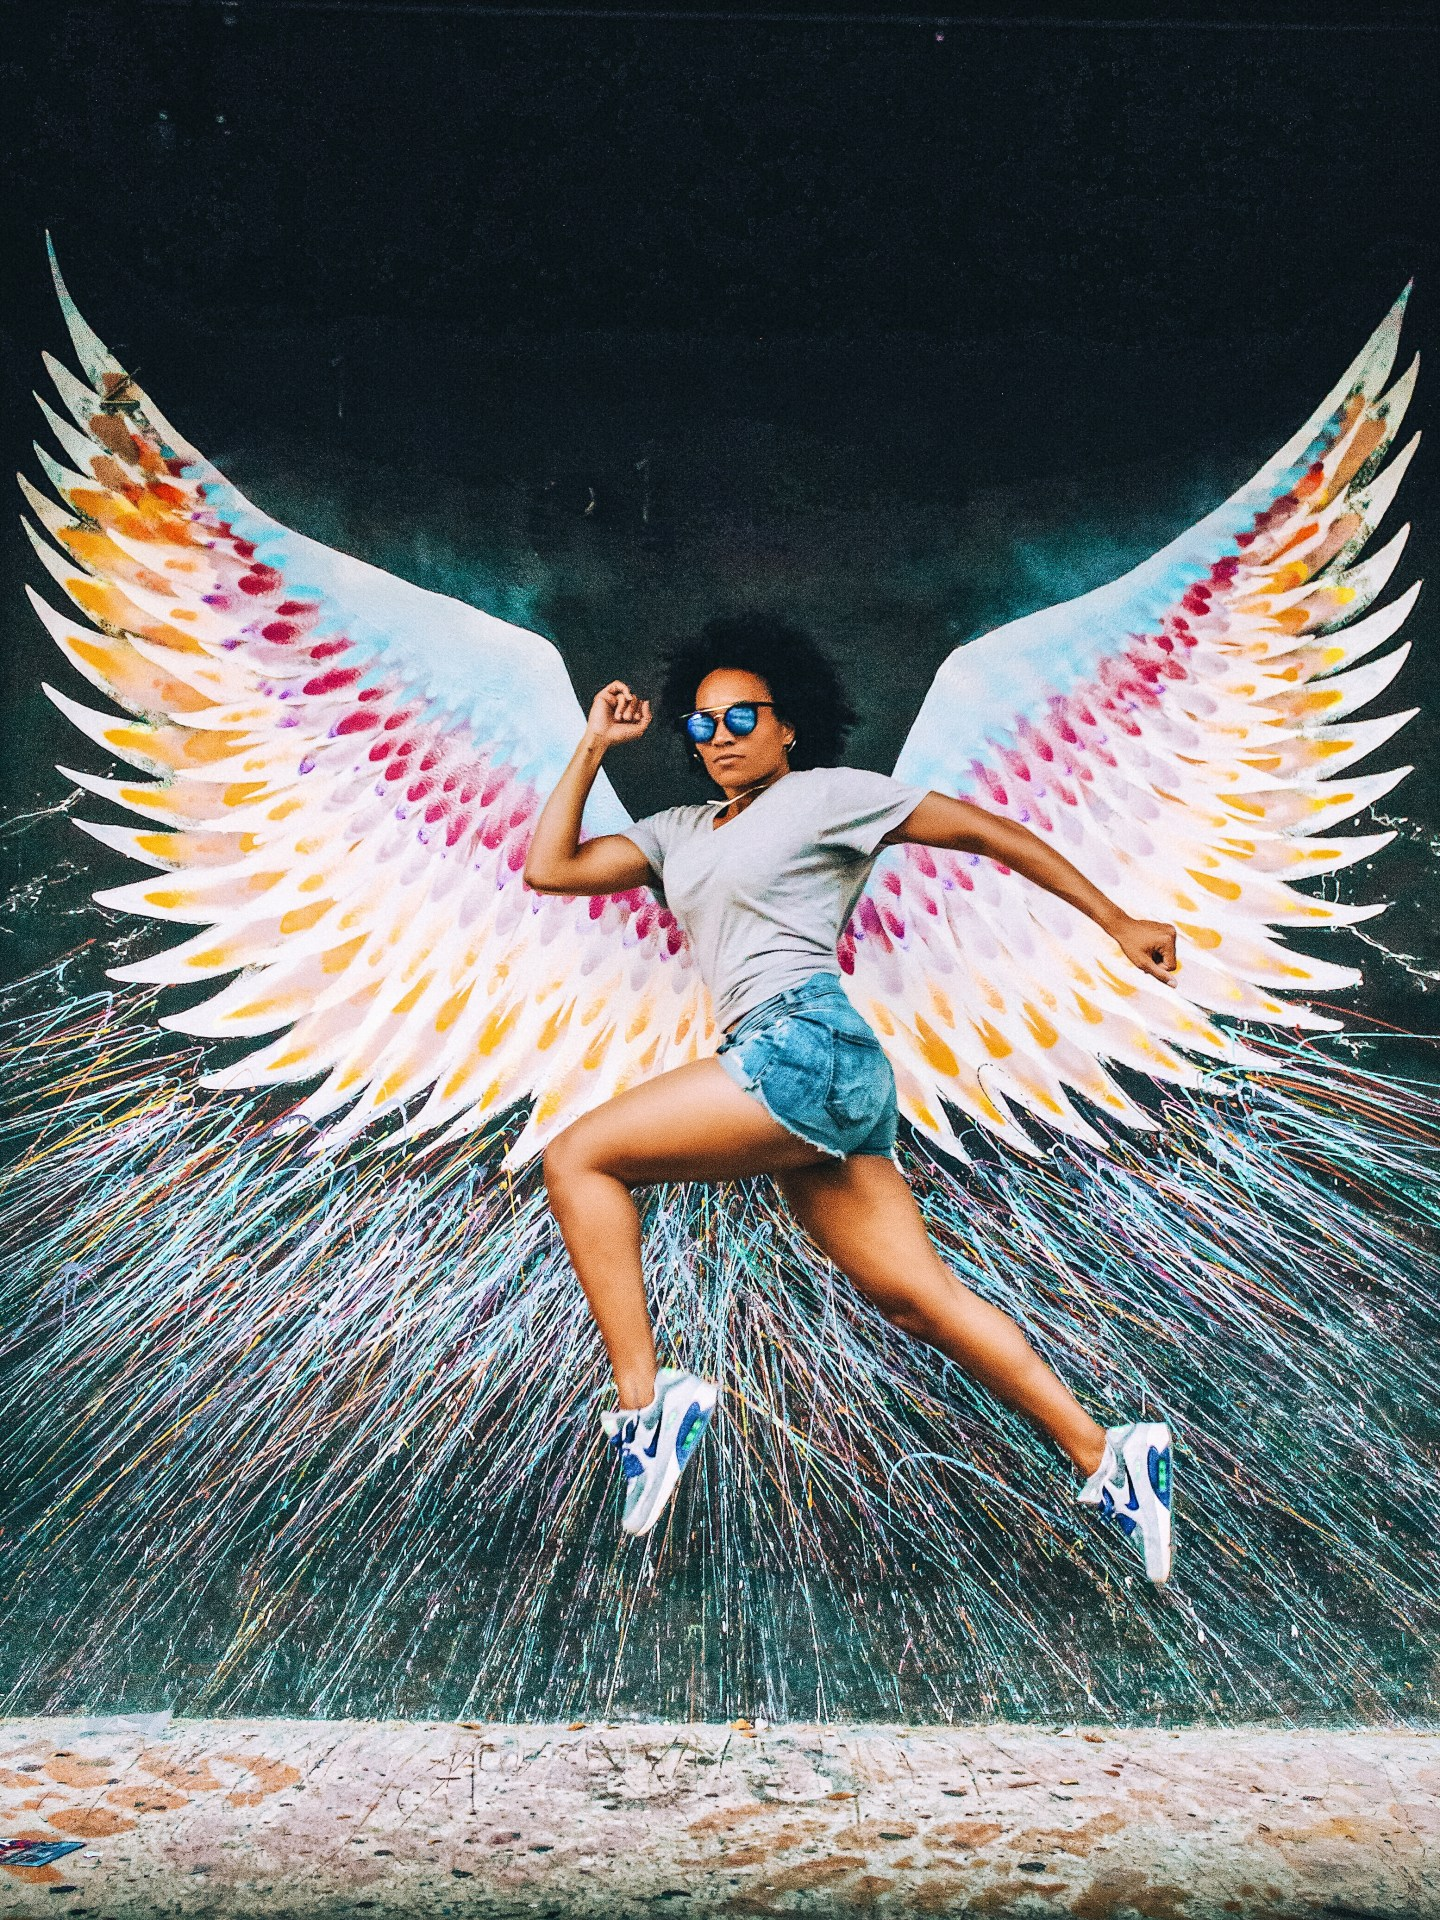 Illustrated by Sade - Woman taking a photo jumping in front of wings art graffiti mural in Wynwood Art District in Miami, Florida